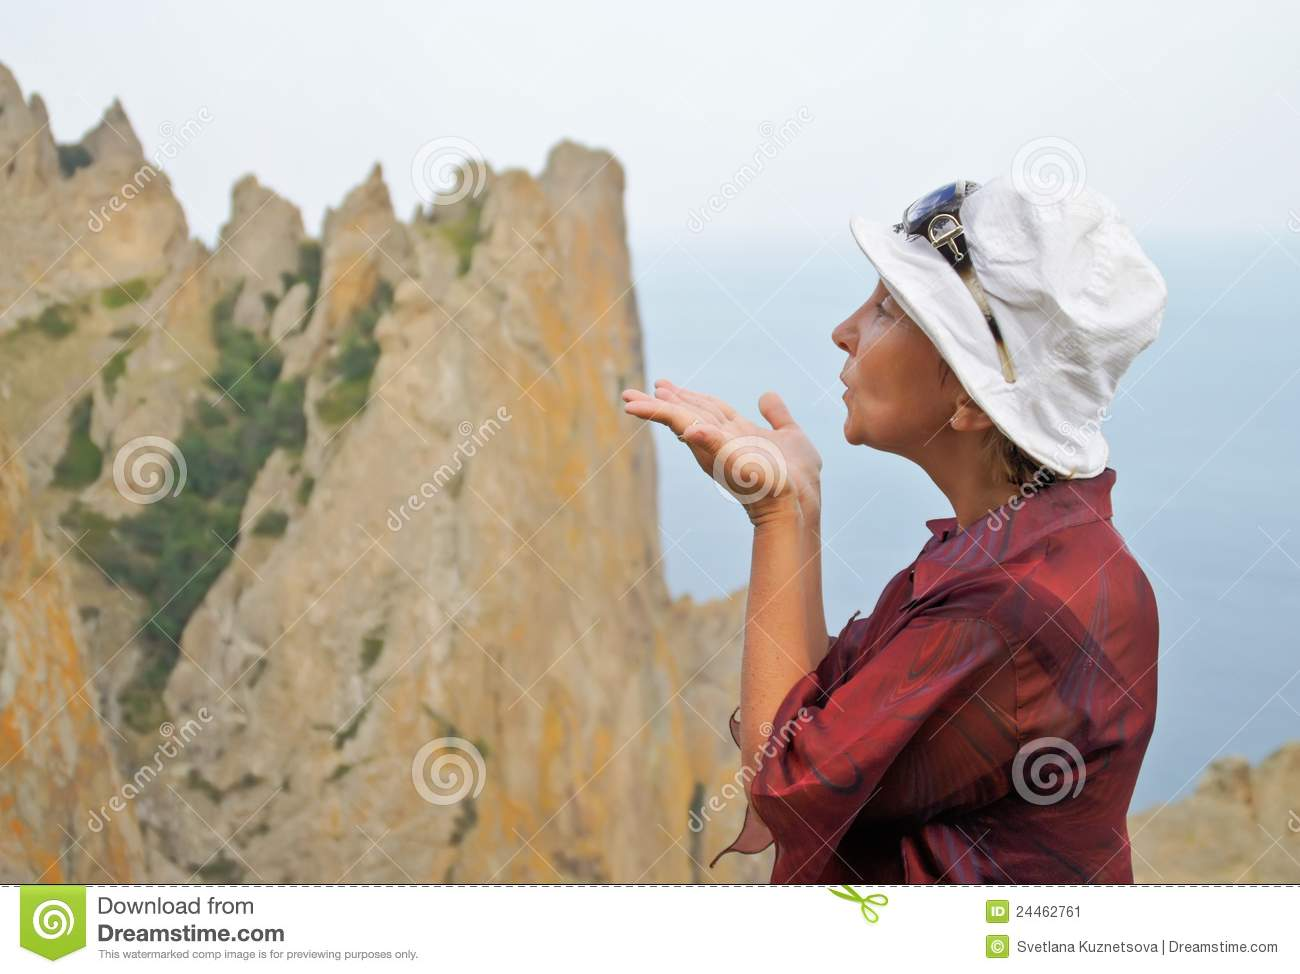 Air Kiss To Mountains Stock Image - Image: 24462761